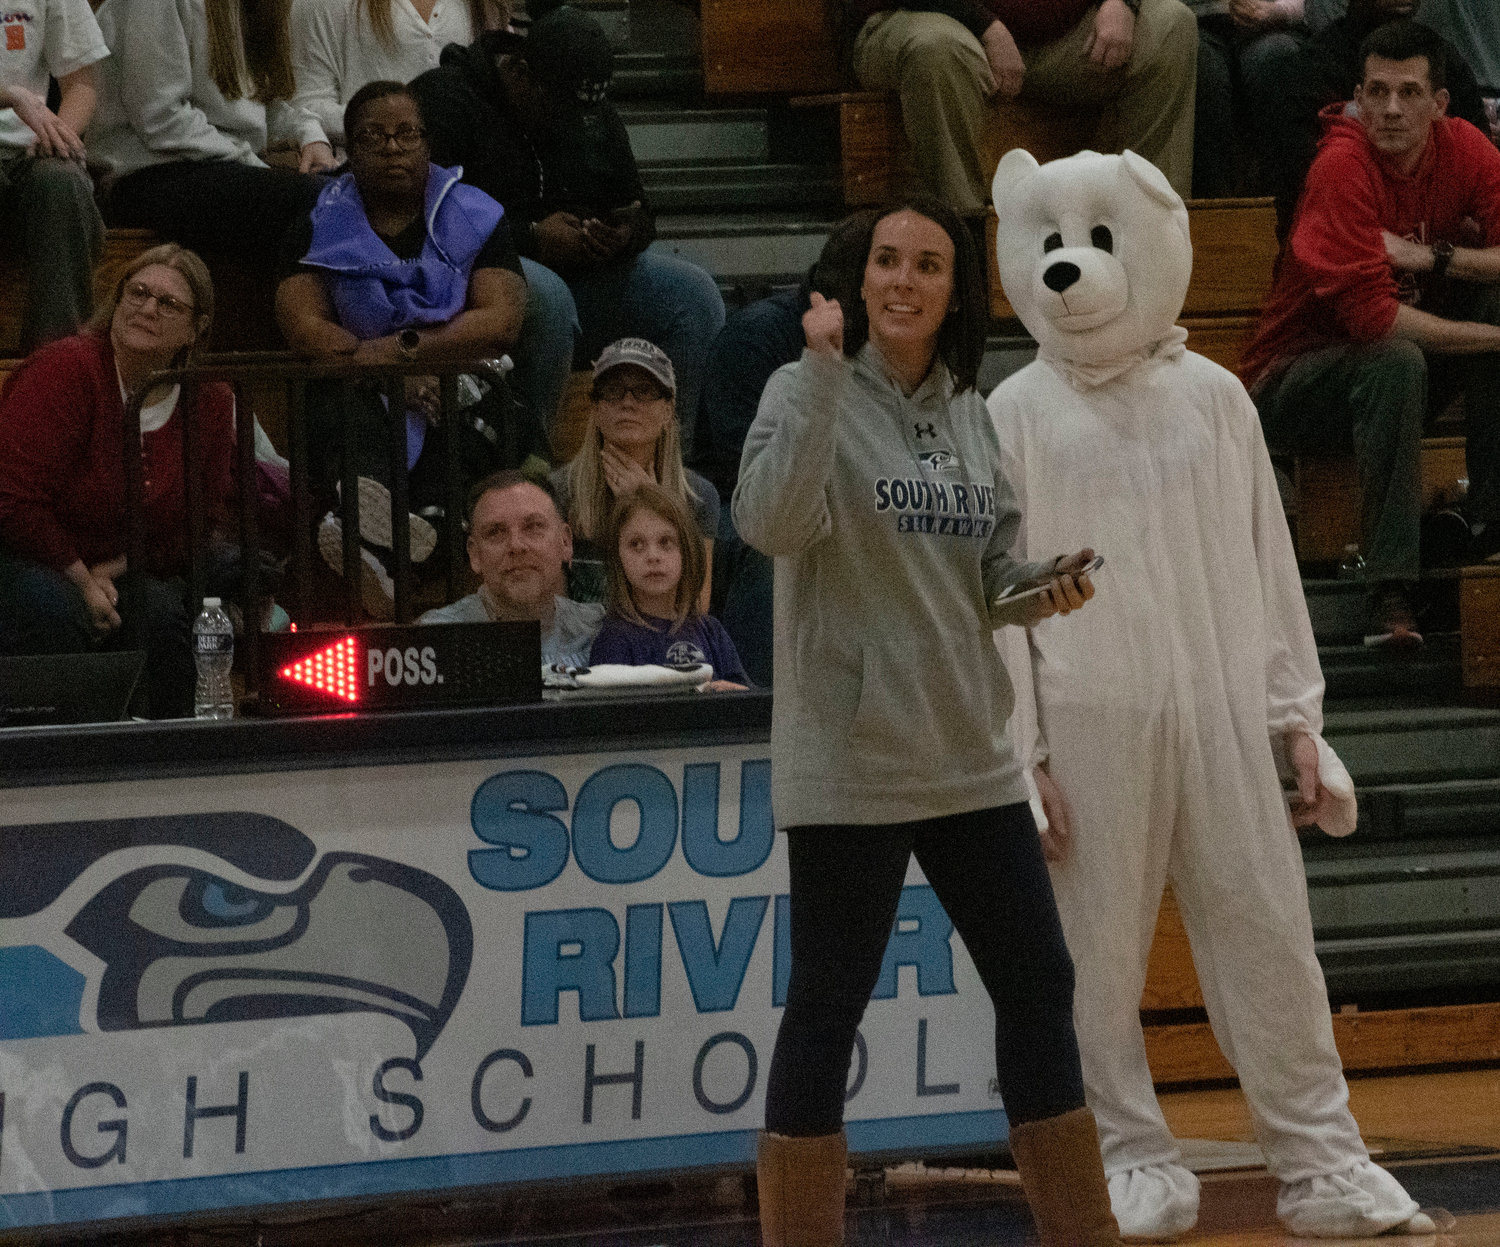 South River English teacher and Cool Schools Plunge team captain Mary Kokosko ran a basketball shooting contest during the halftime period of the school's home game against Southern.